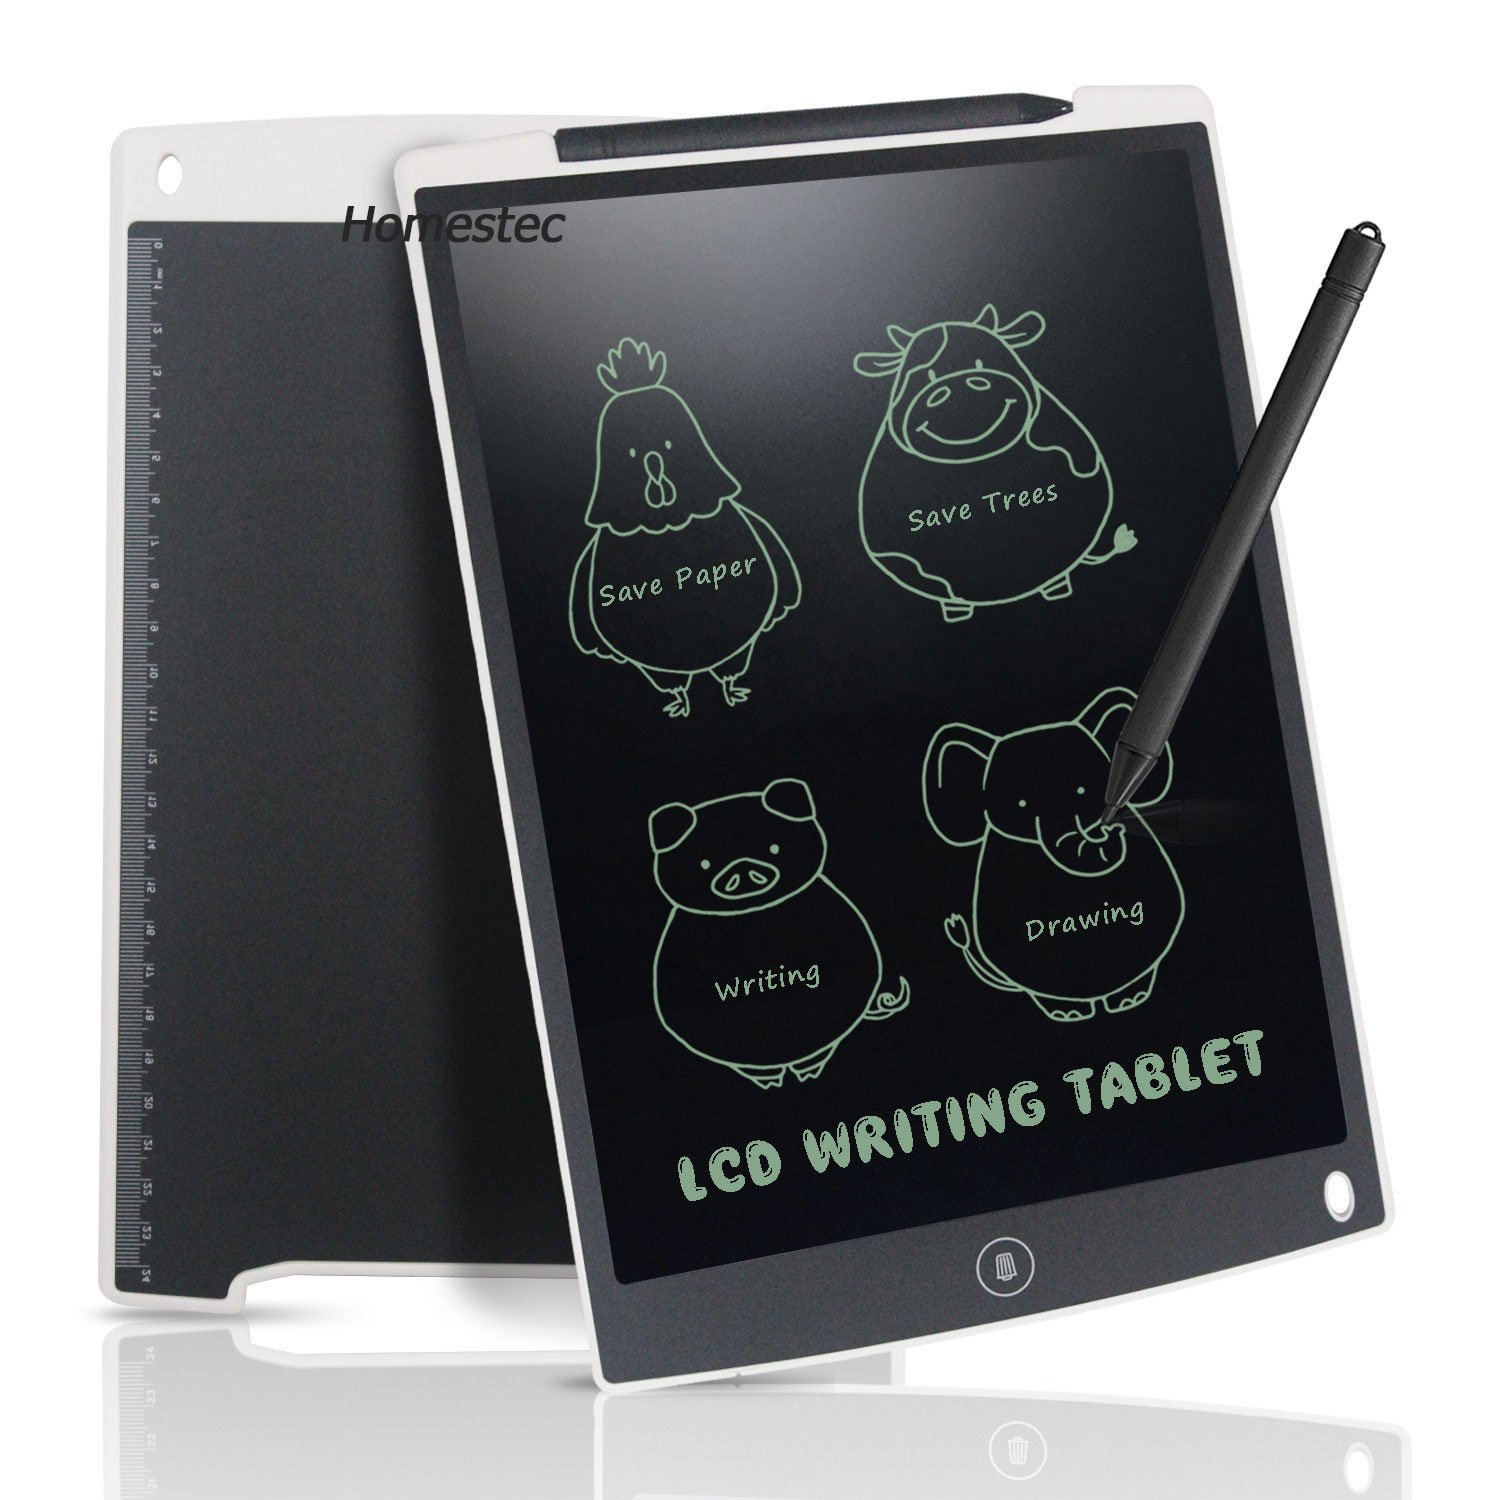 LCD Writing Tablet 12 Inch - HOMESTEC Drawing Board Gifts for Kids Office Writing Memo Board (White) NYWT